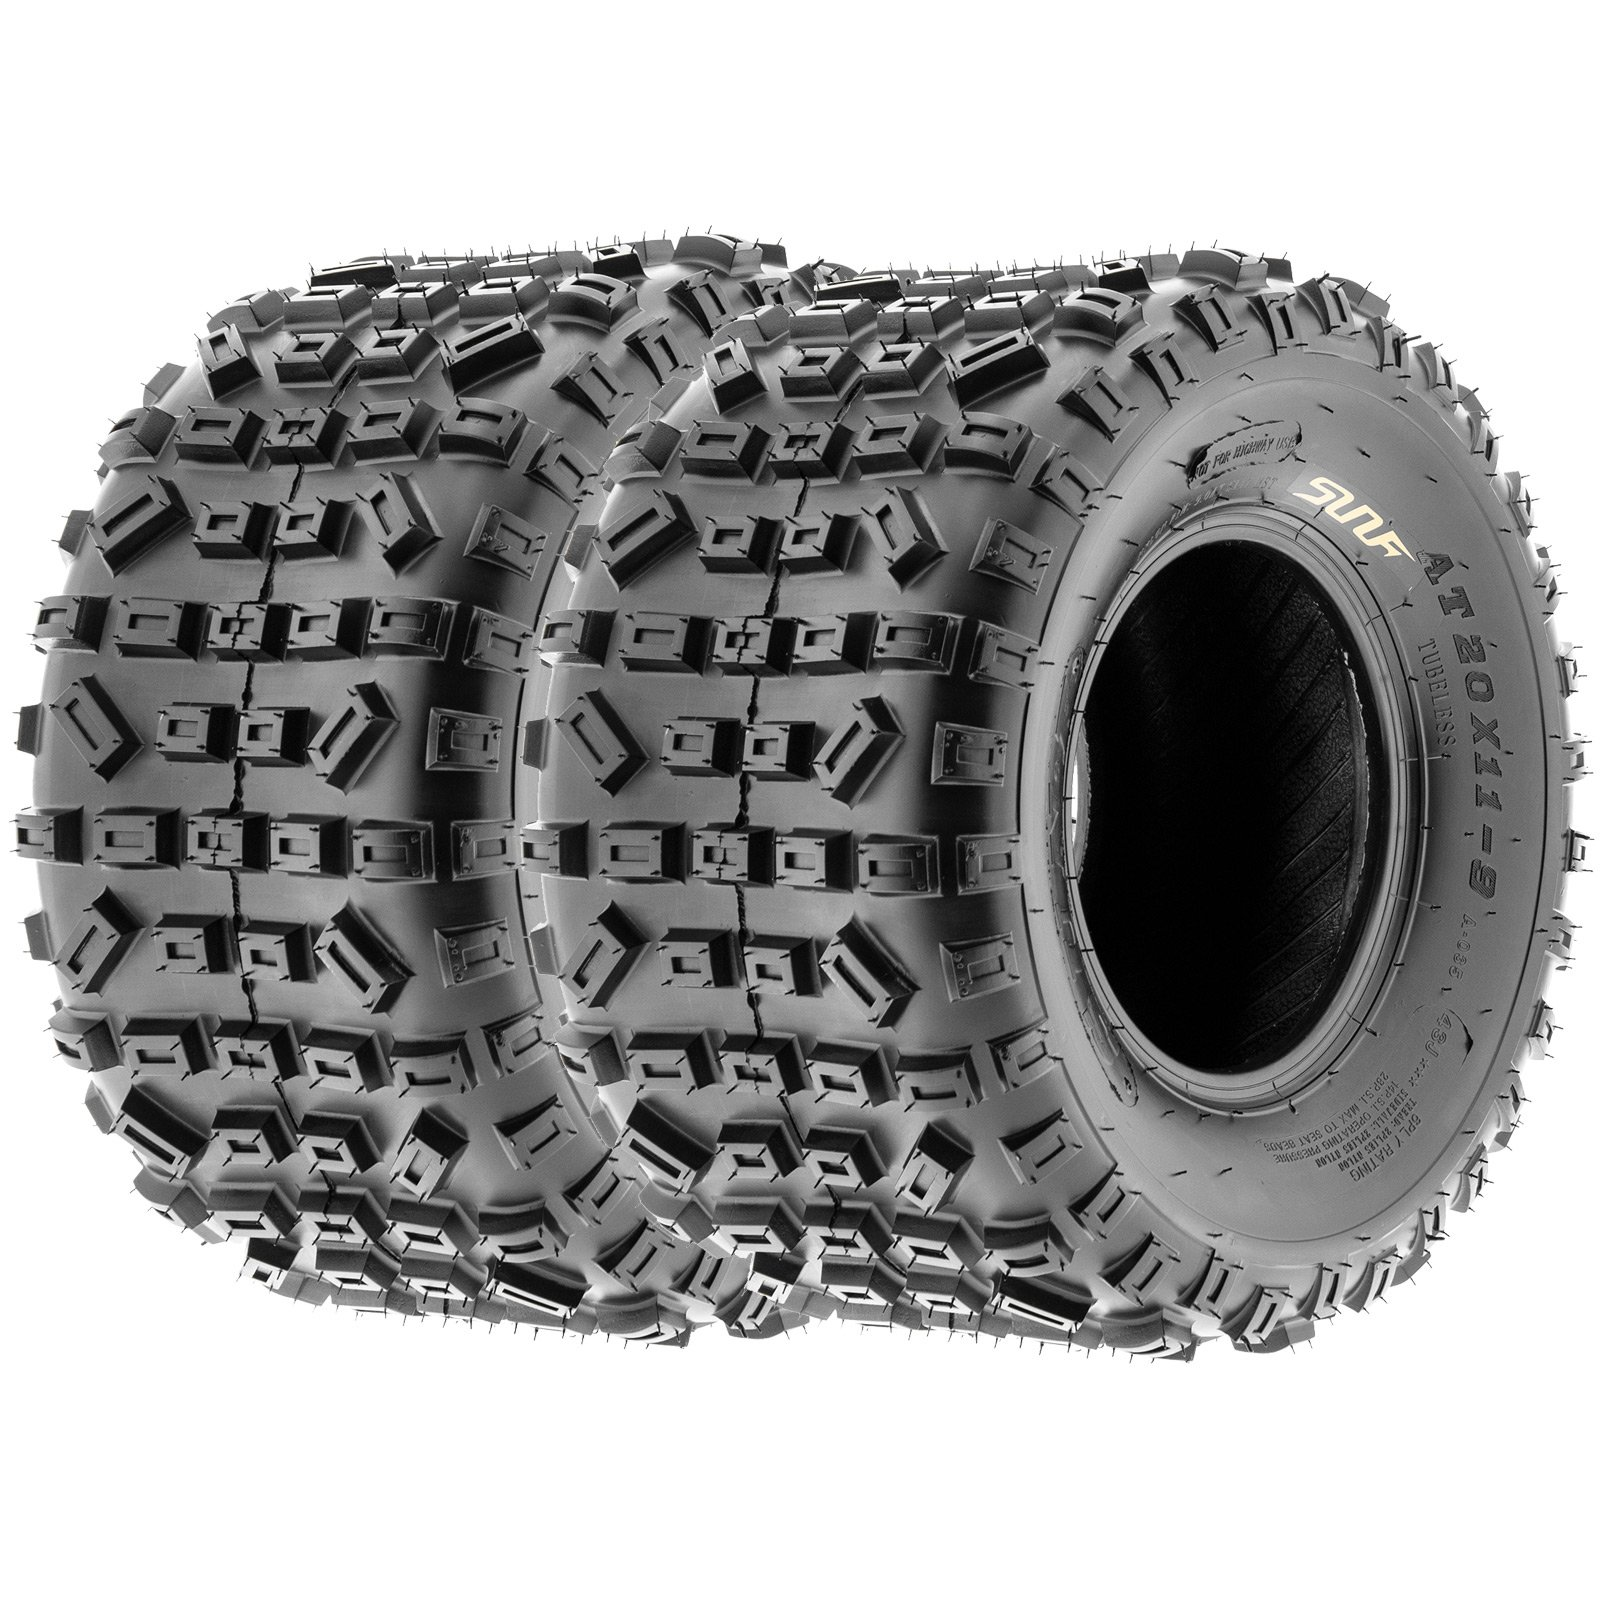 SunF Knobby XC MX ATV Tires 21x6-10 & 20x11-9 6 PR A035 (Full set of 4, Front & Rear) by SunF (Image #3)